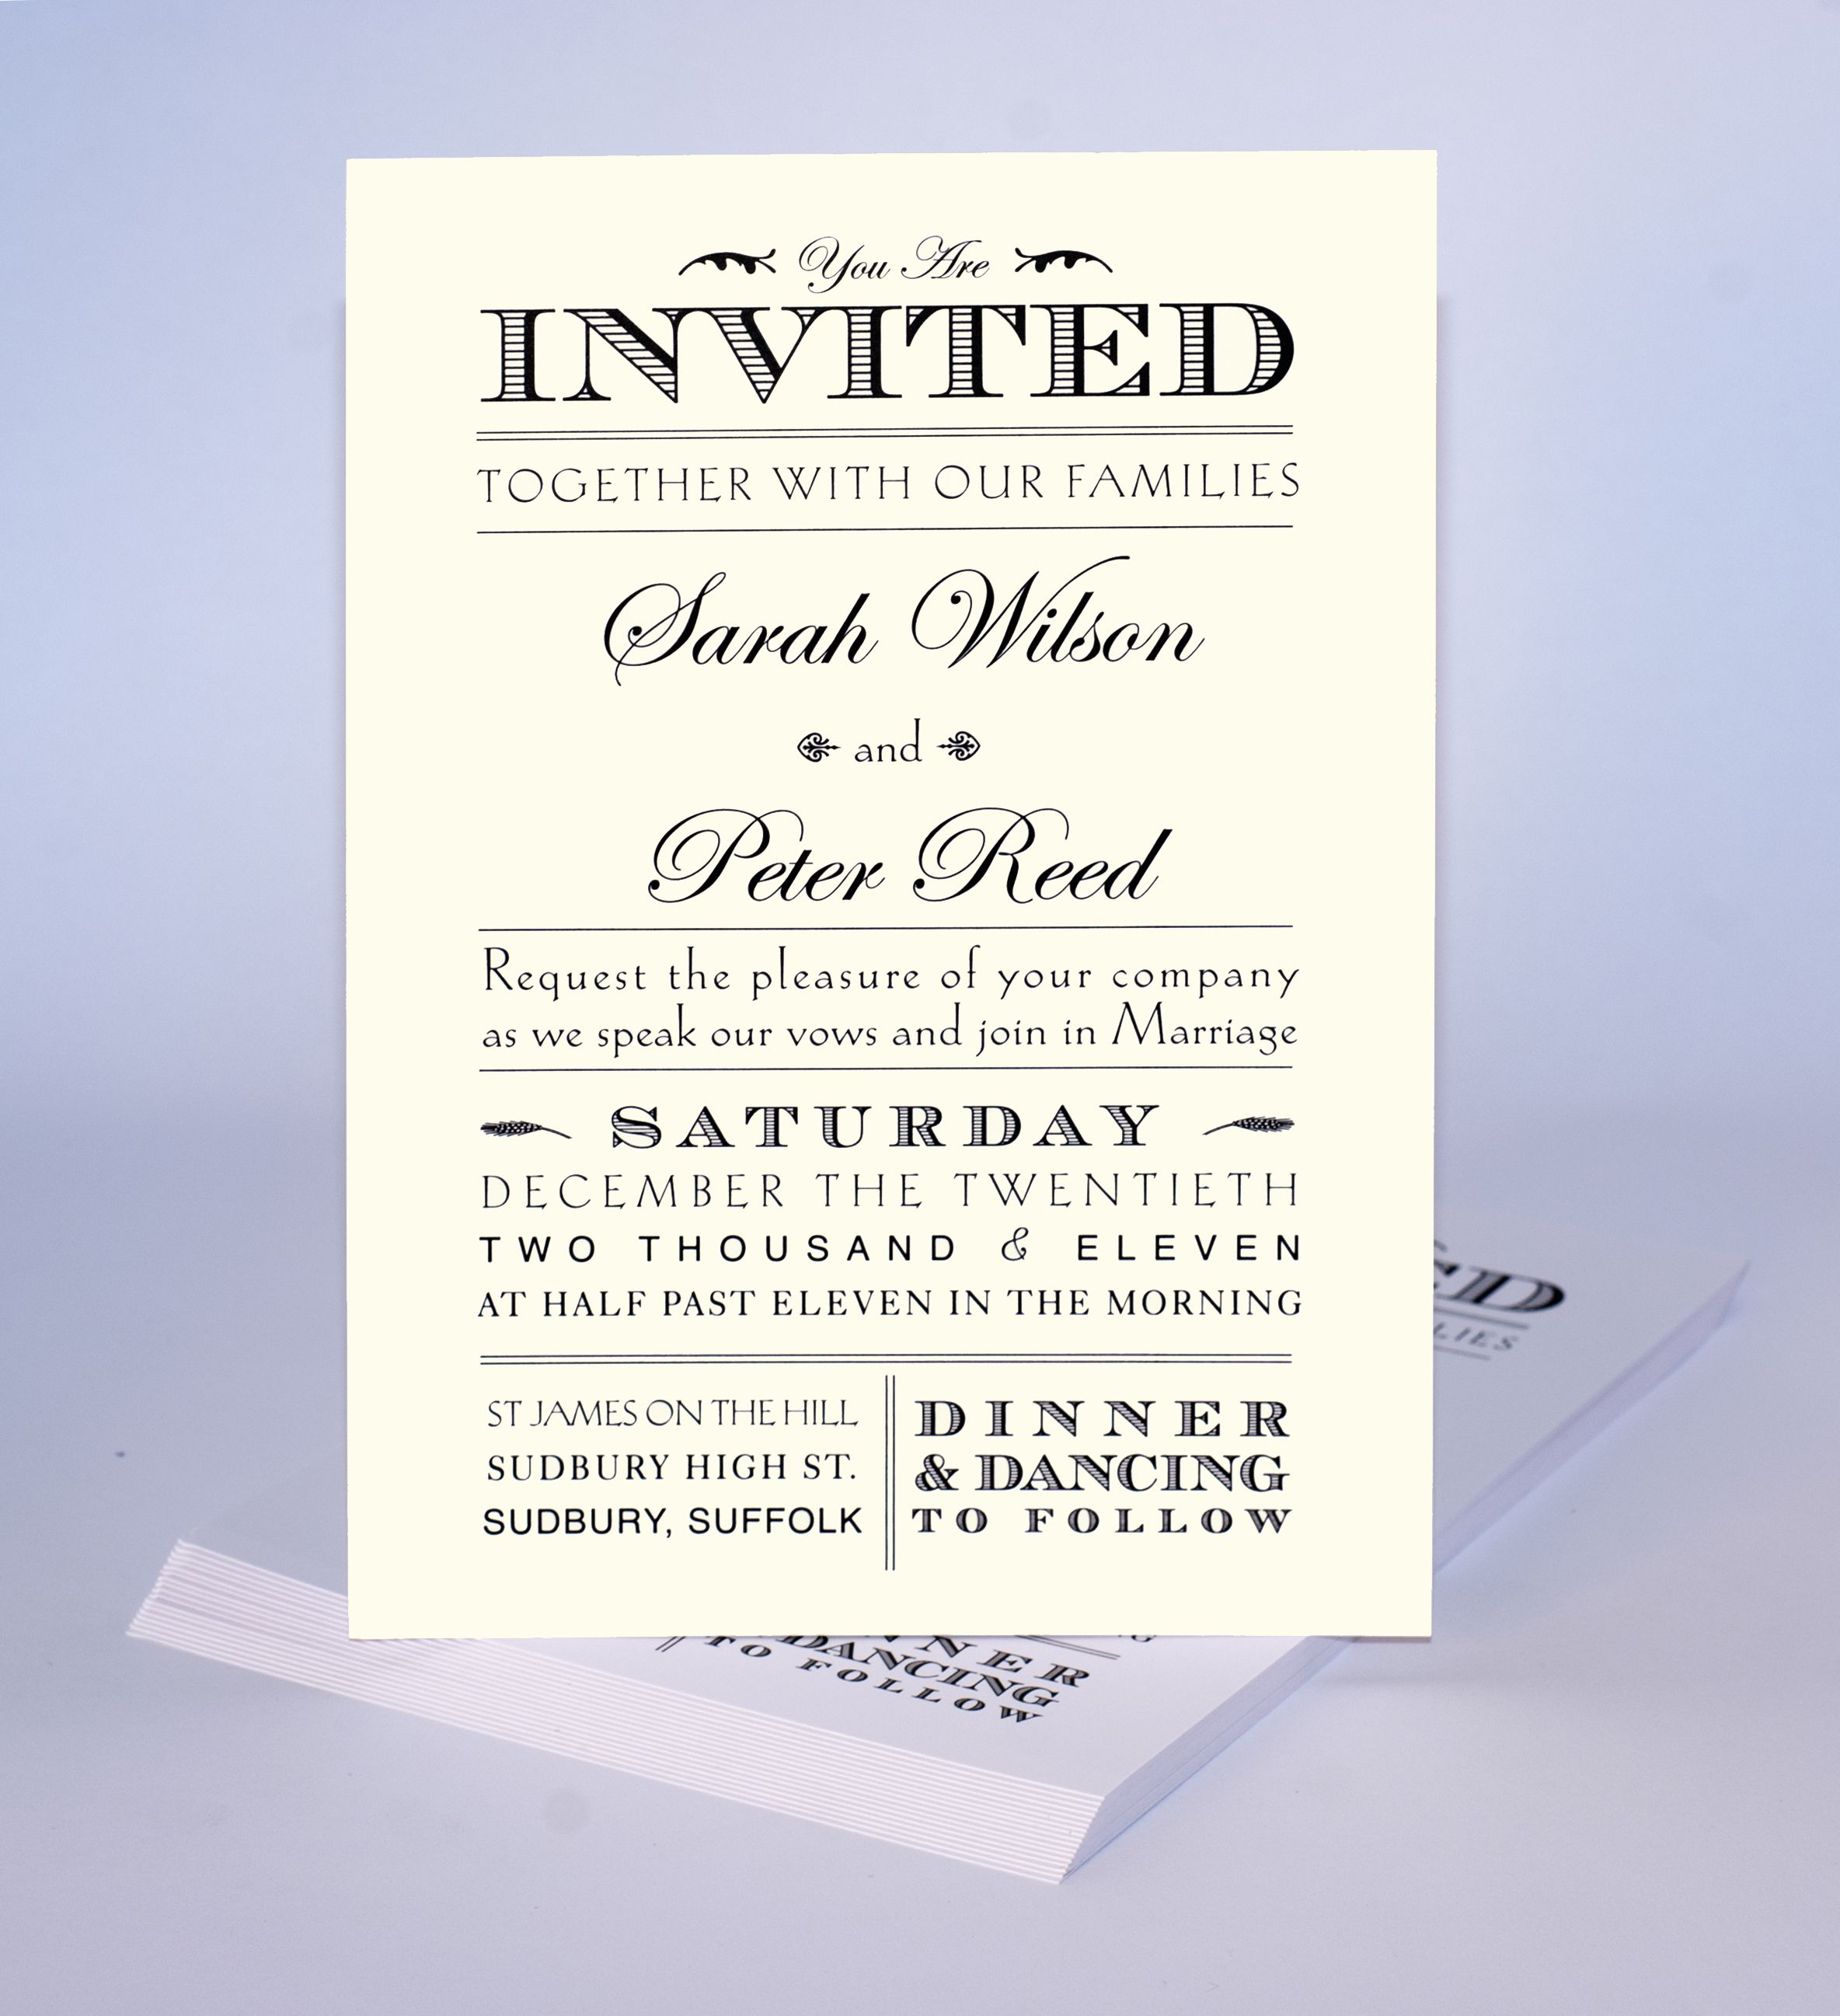 Sample Invitations For Wedding: Wedding Ideas : Wedding Invite Samples For Public Sample